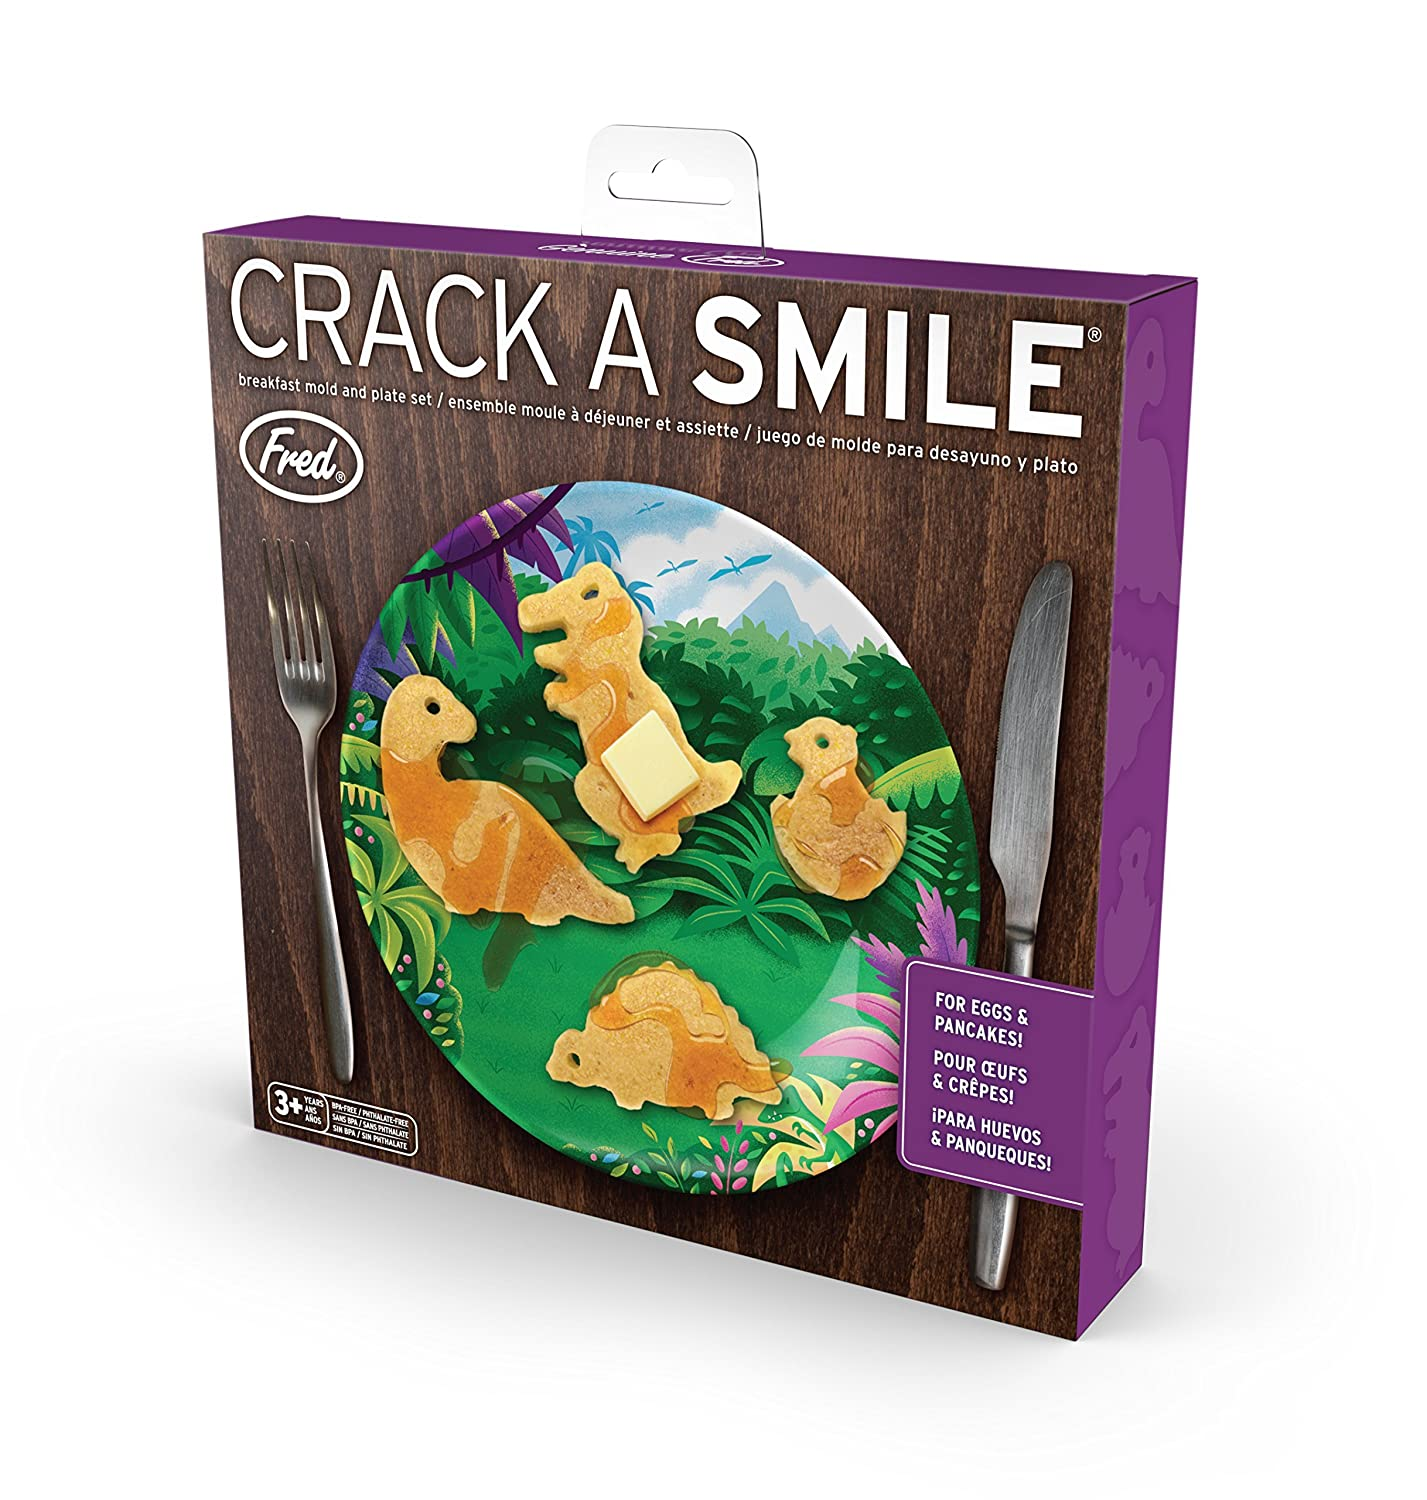 Amazon.com: Fred 5212672 CRACK-A-SMILE Silicone Egg/Pancake Mold and Plate Breakfast Set, Brown: Kitchen & Dining